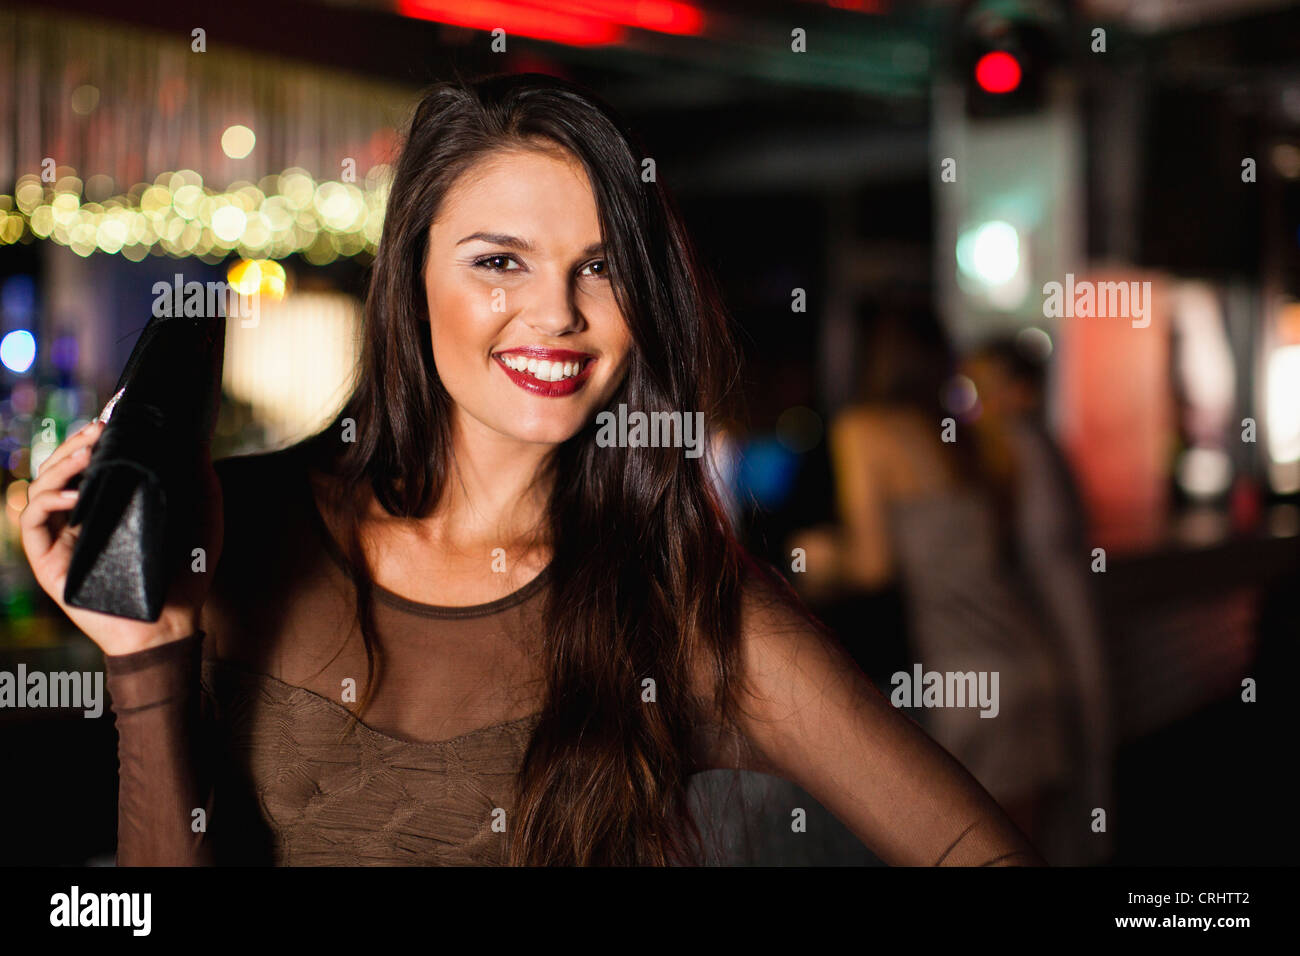 Smiling woman standing in bar - Stock Image